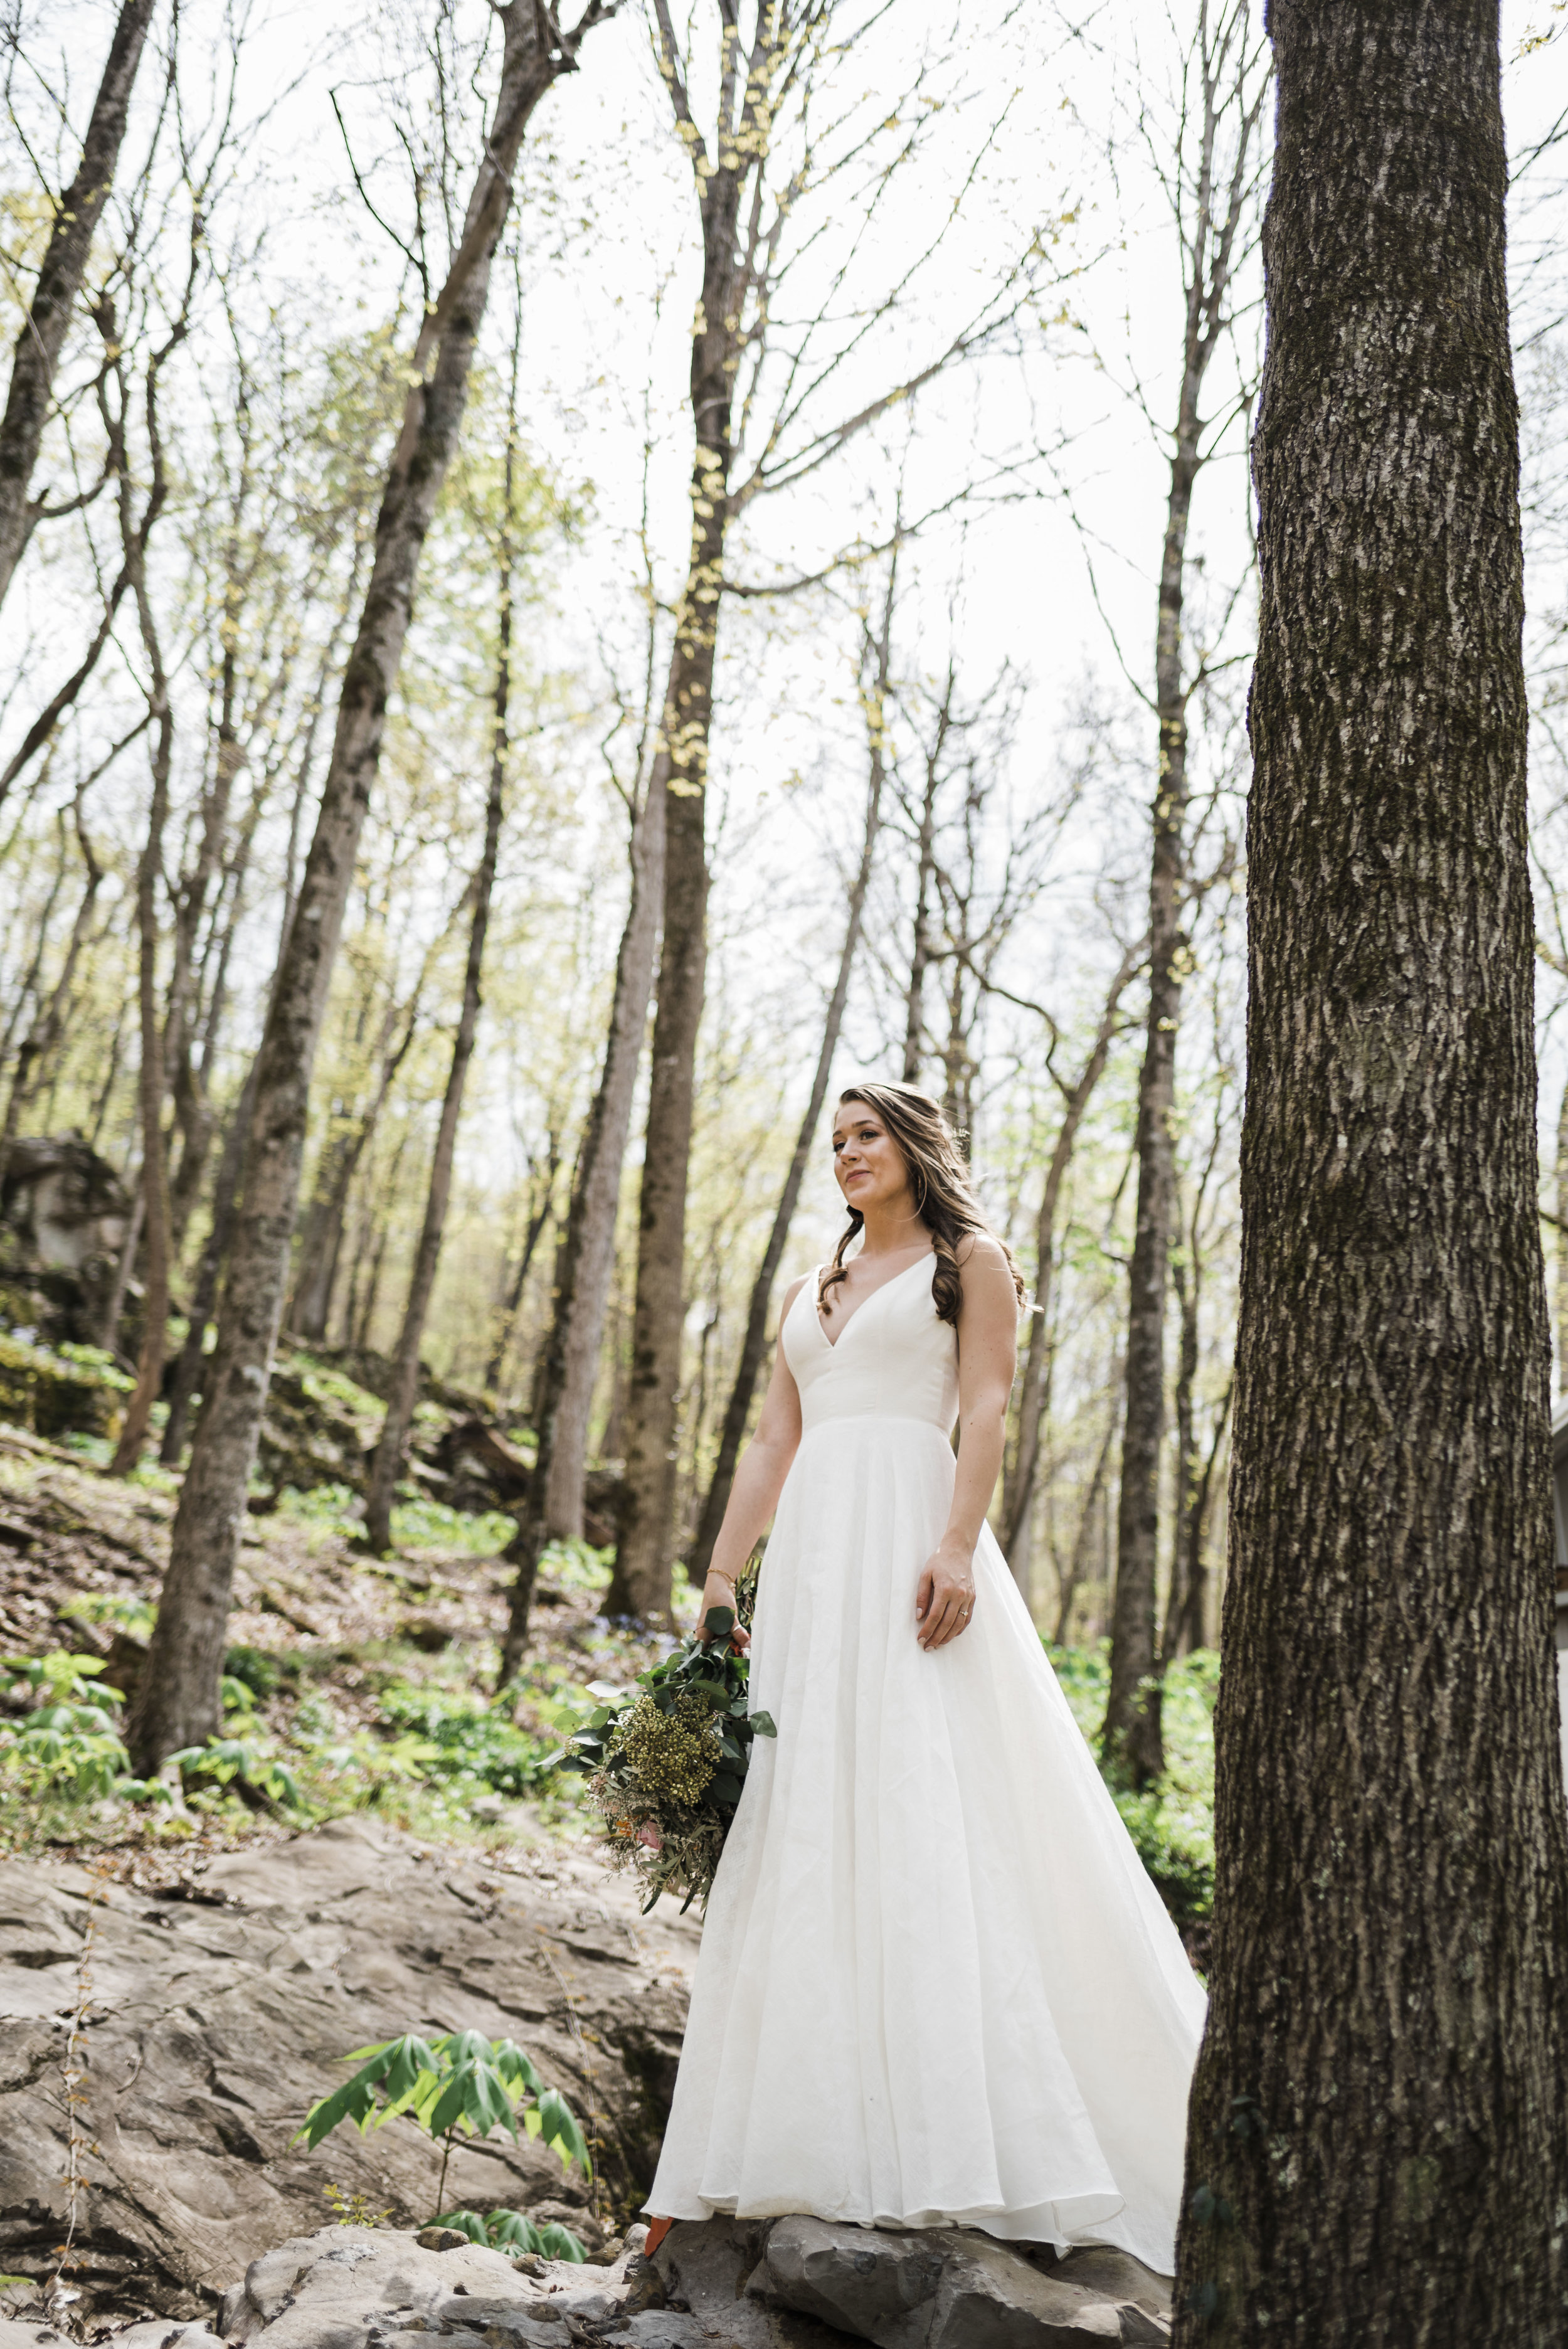 wedding bride chattanooga Tennessee forest